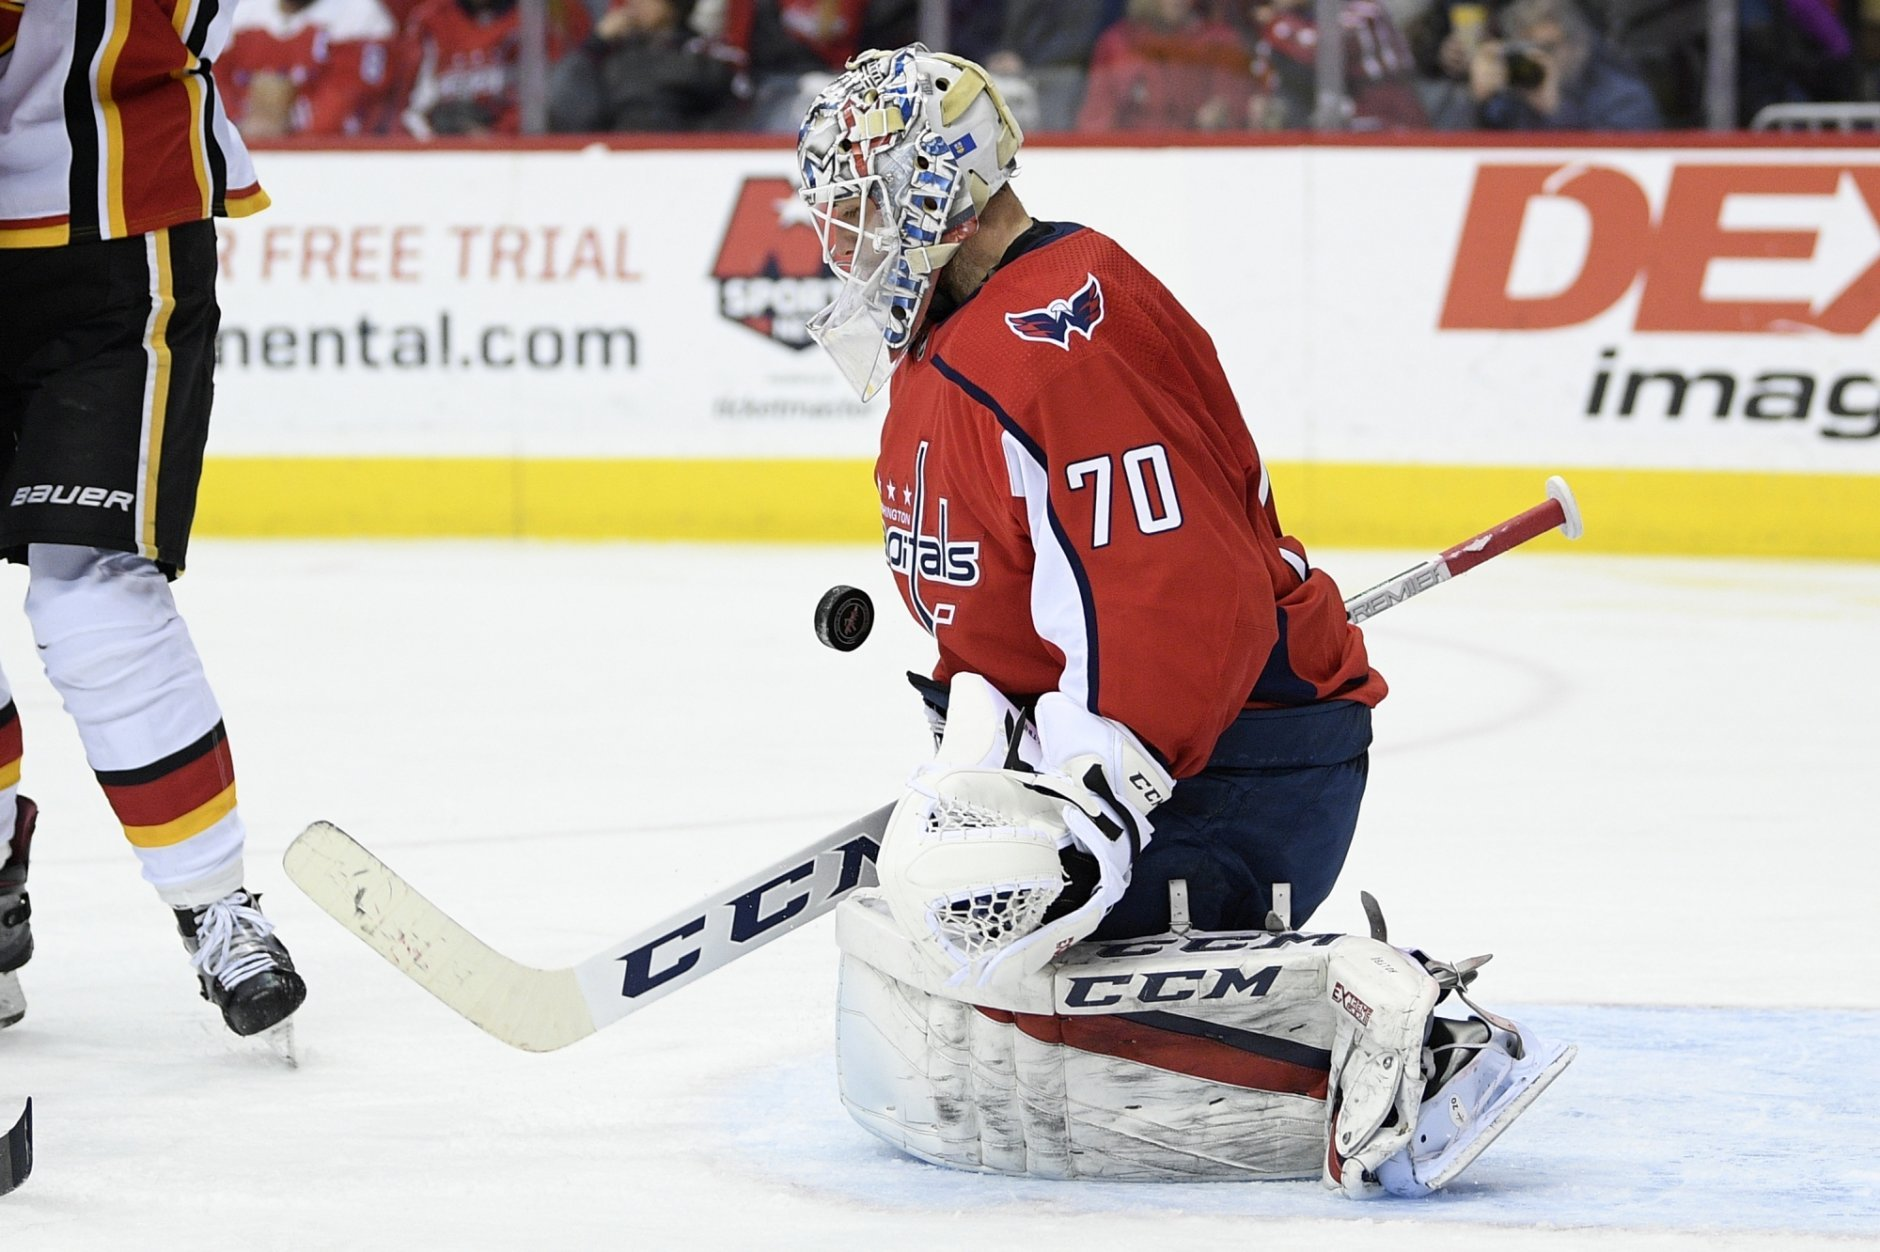 Washington Capitals goaltender Braden Holtby (70) stops the puck during the second period of an NHL hockey game against the Calgary Flames, Friday, Feb. 1, 2019, in Washington. (AP Photo/Nick Wass)